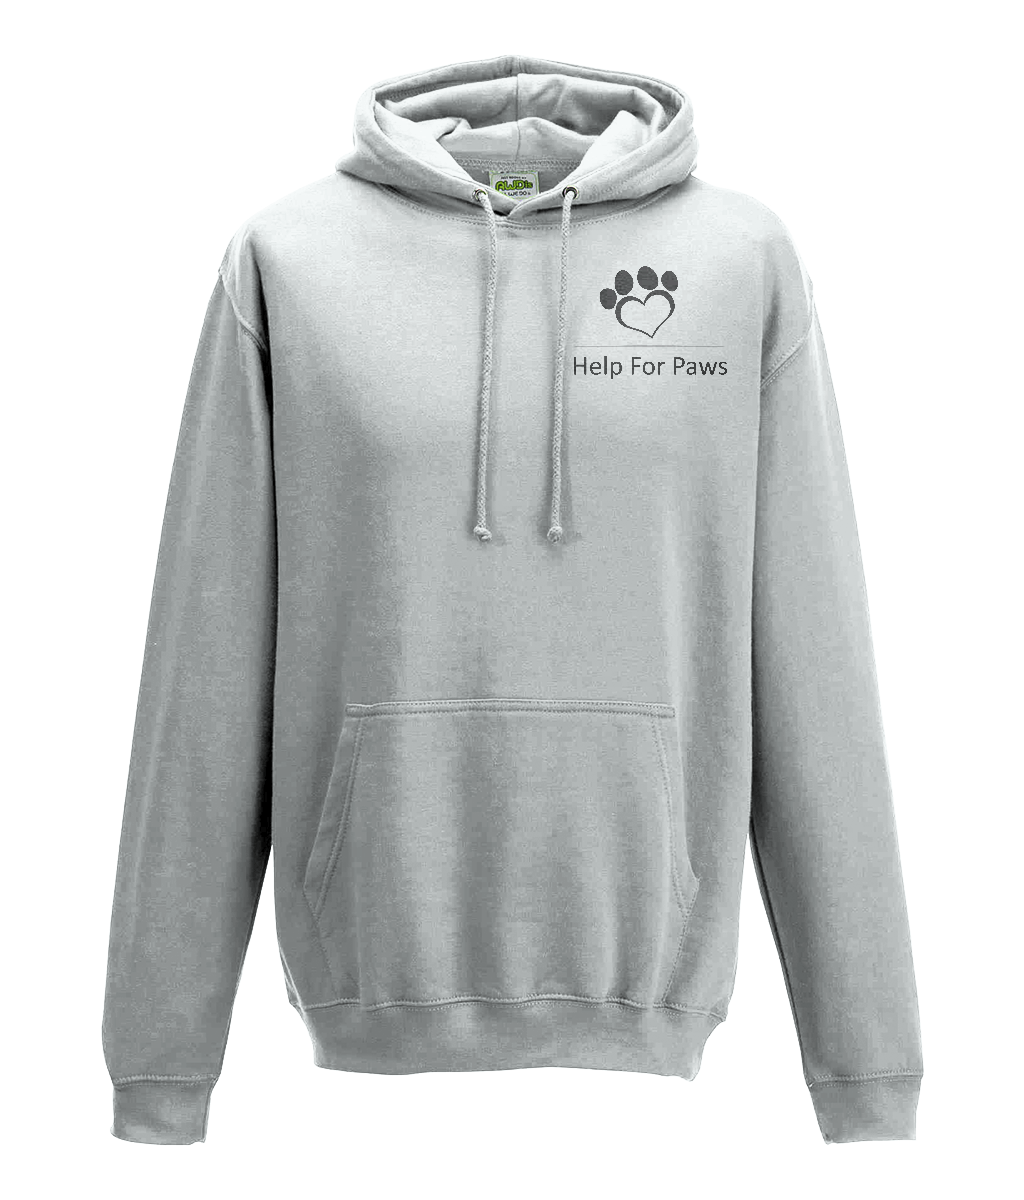 Help For Paws Ash Grey Hoodie